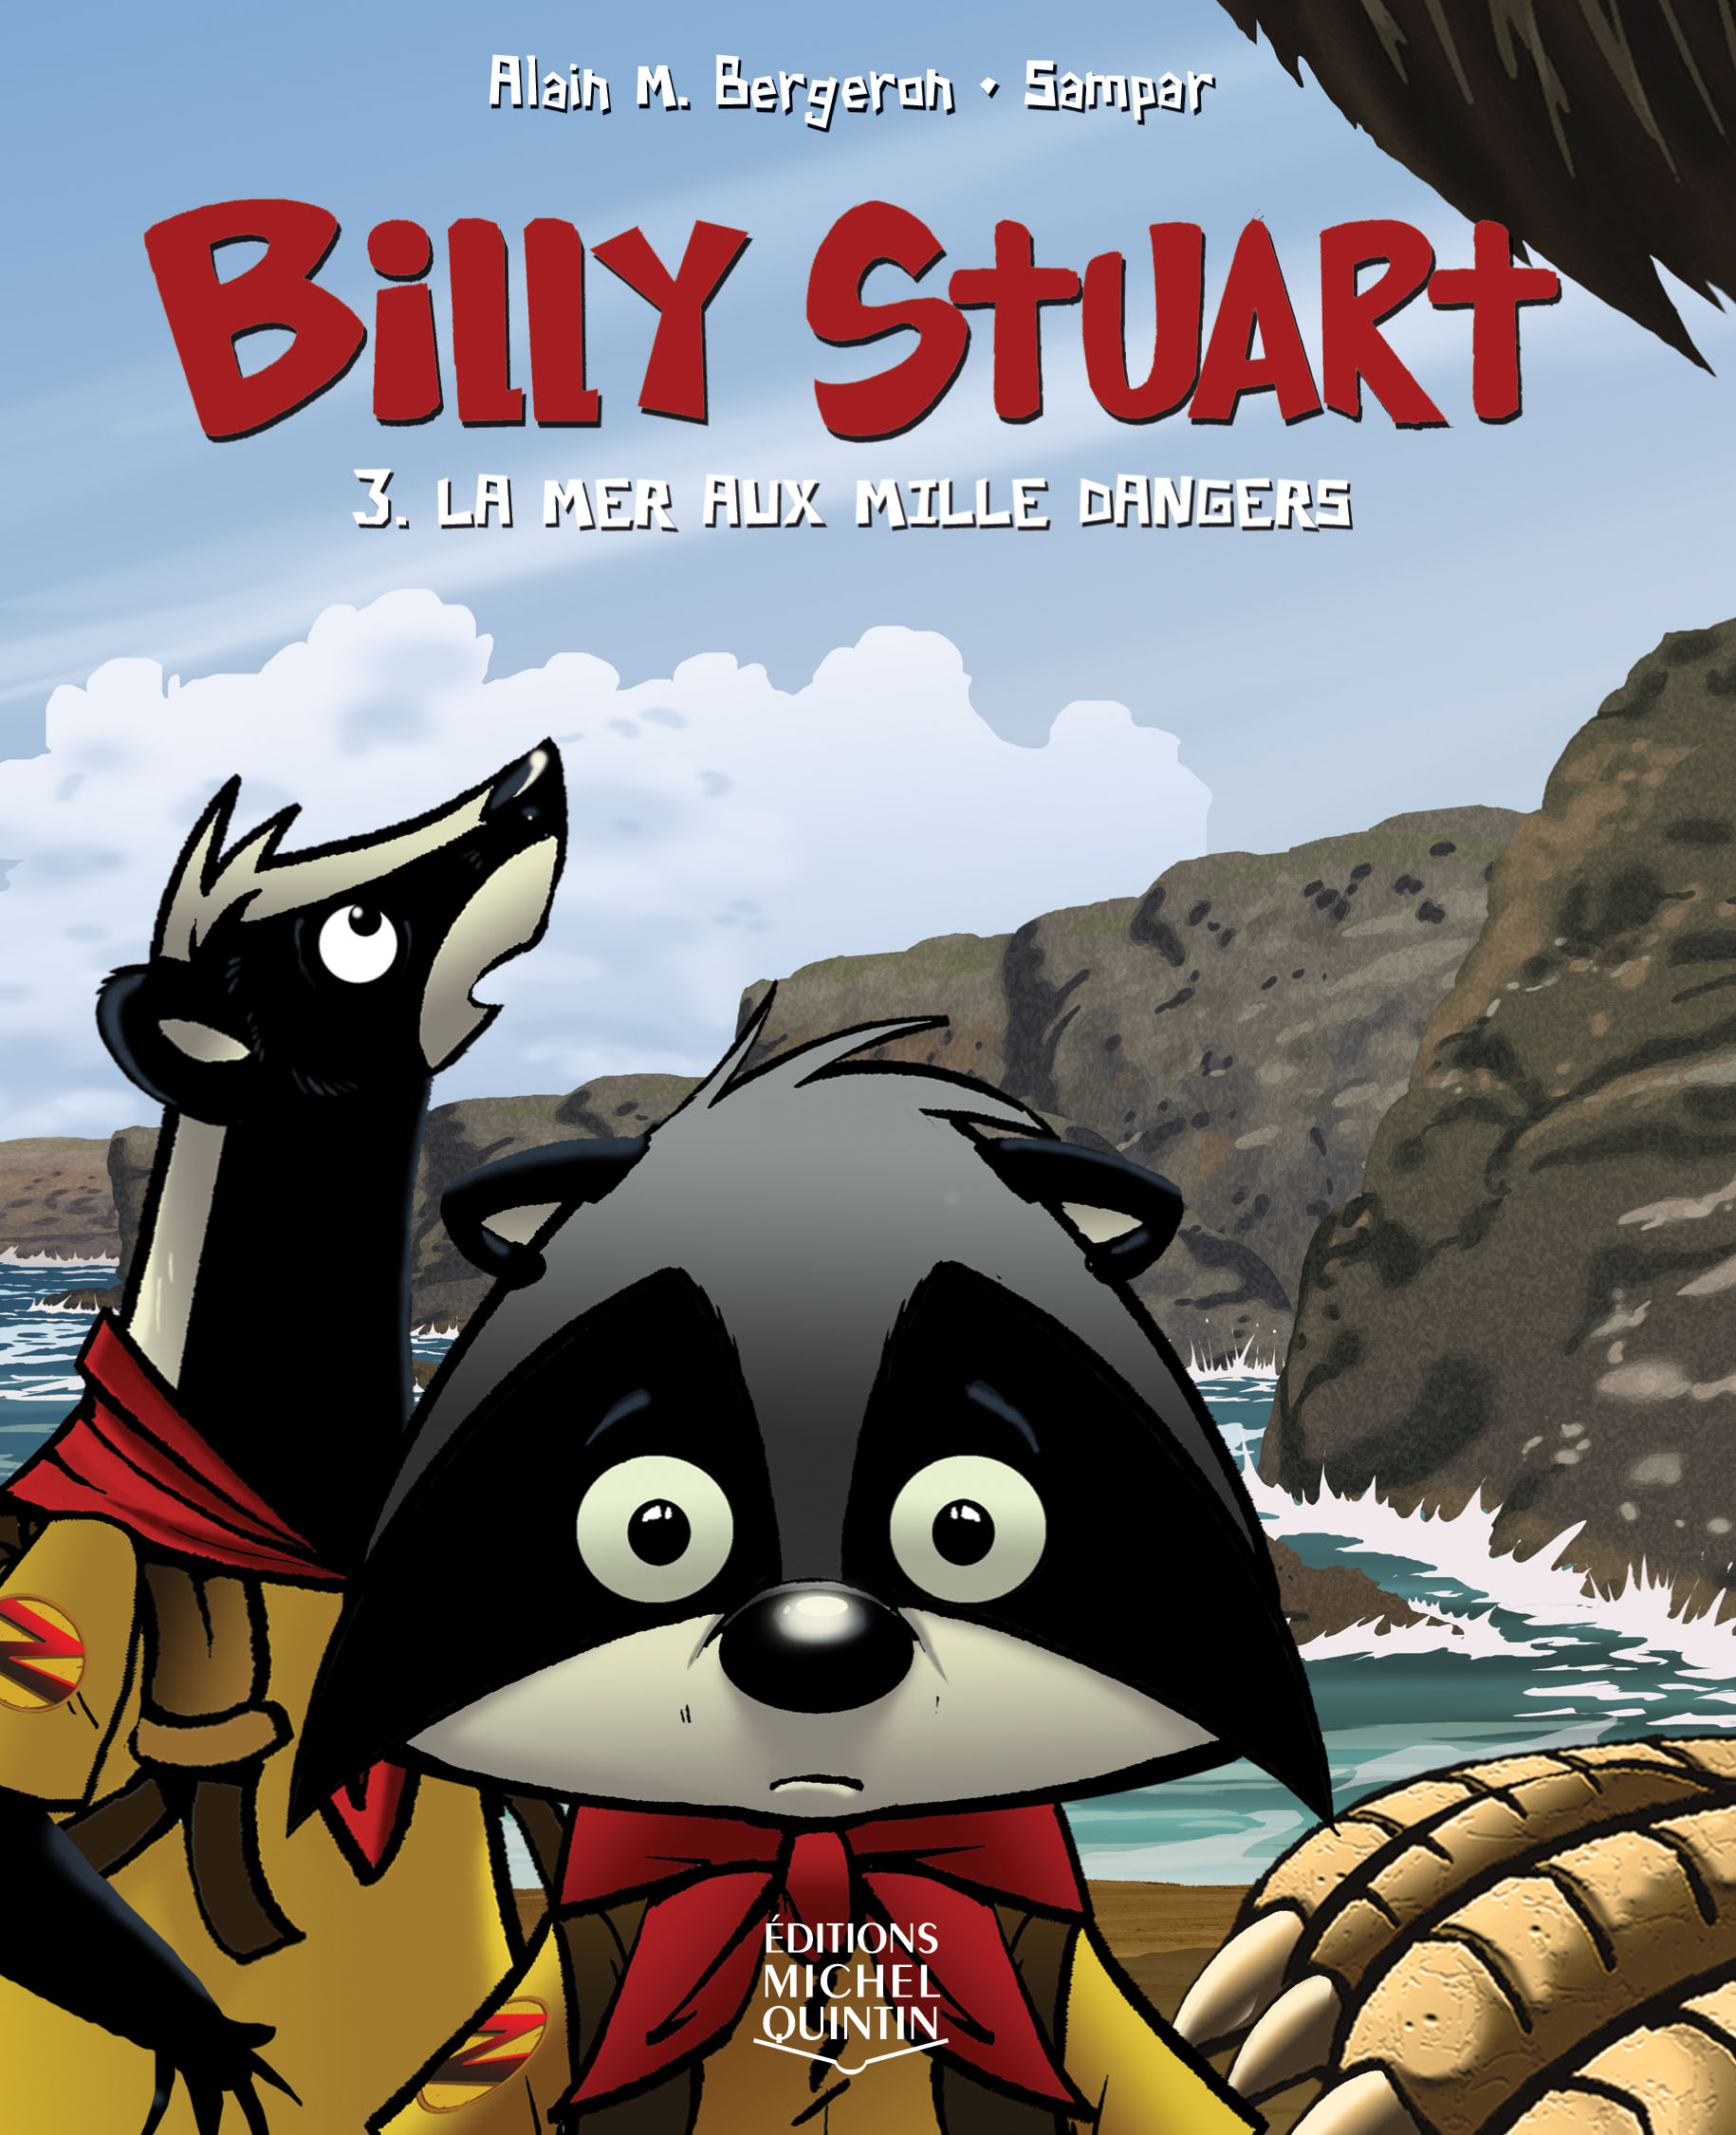 Couverture : Billy Stuart T.3 : La mer aux mille dangers Alain M. Bergeron,  Sampar